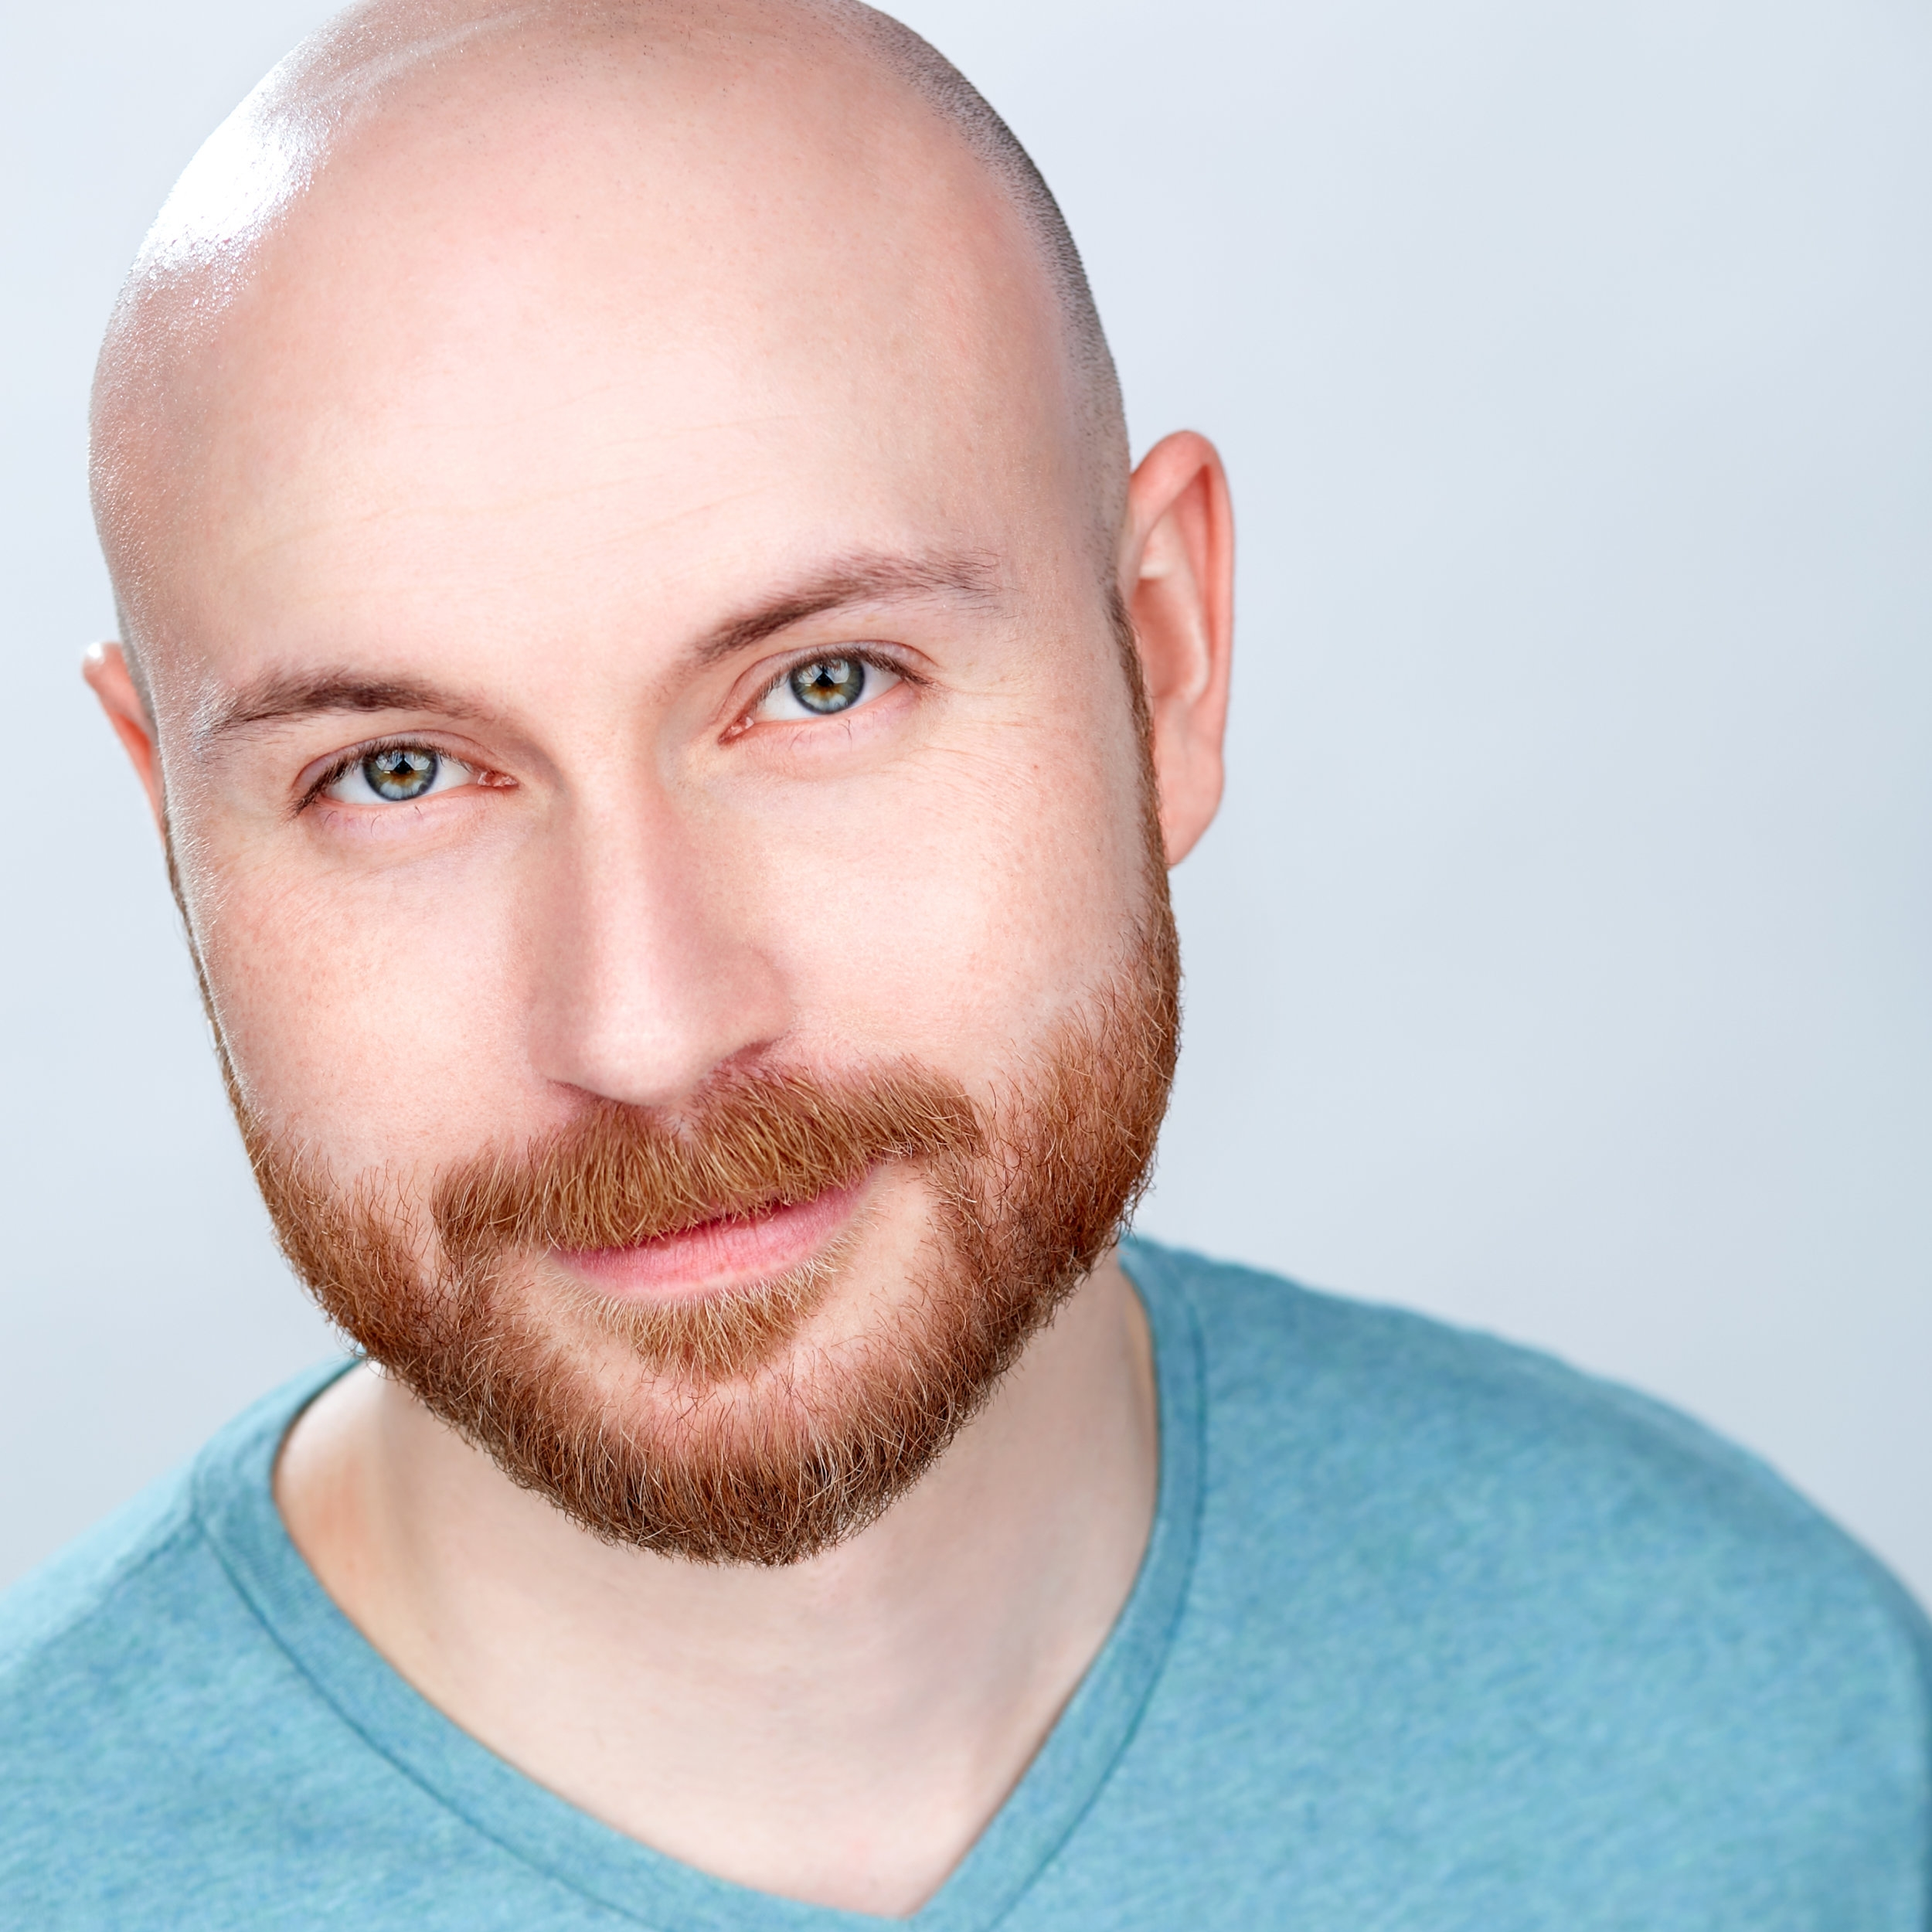 RYAN HALSAVER - Ryan is thrilled to be a part of this cast and wonderful series. He recently played Paul in Moon Over Buffalo, and was last seen as Eggy in the new web series, Finny and the Egg Man: Adventures Within. ryanhalsaver.com